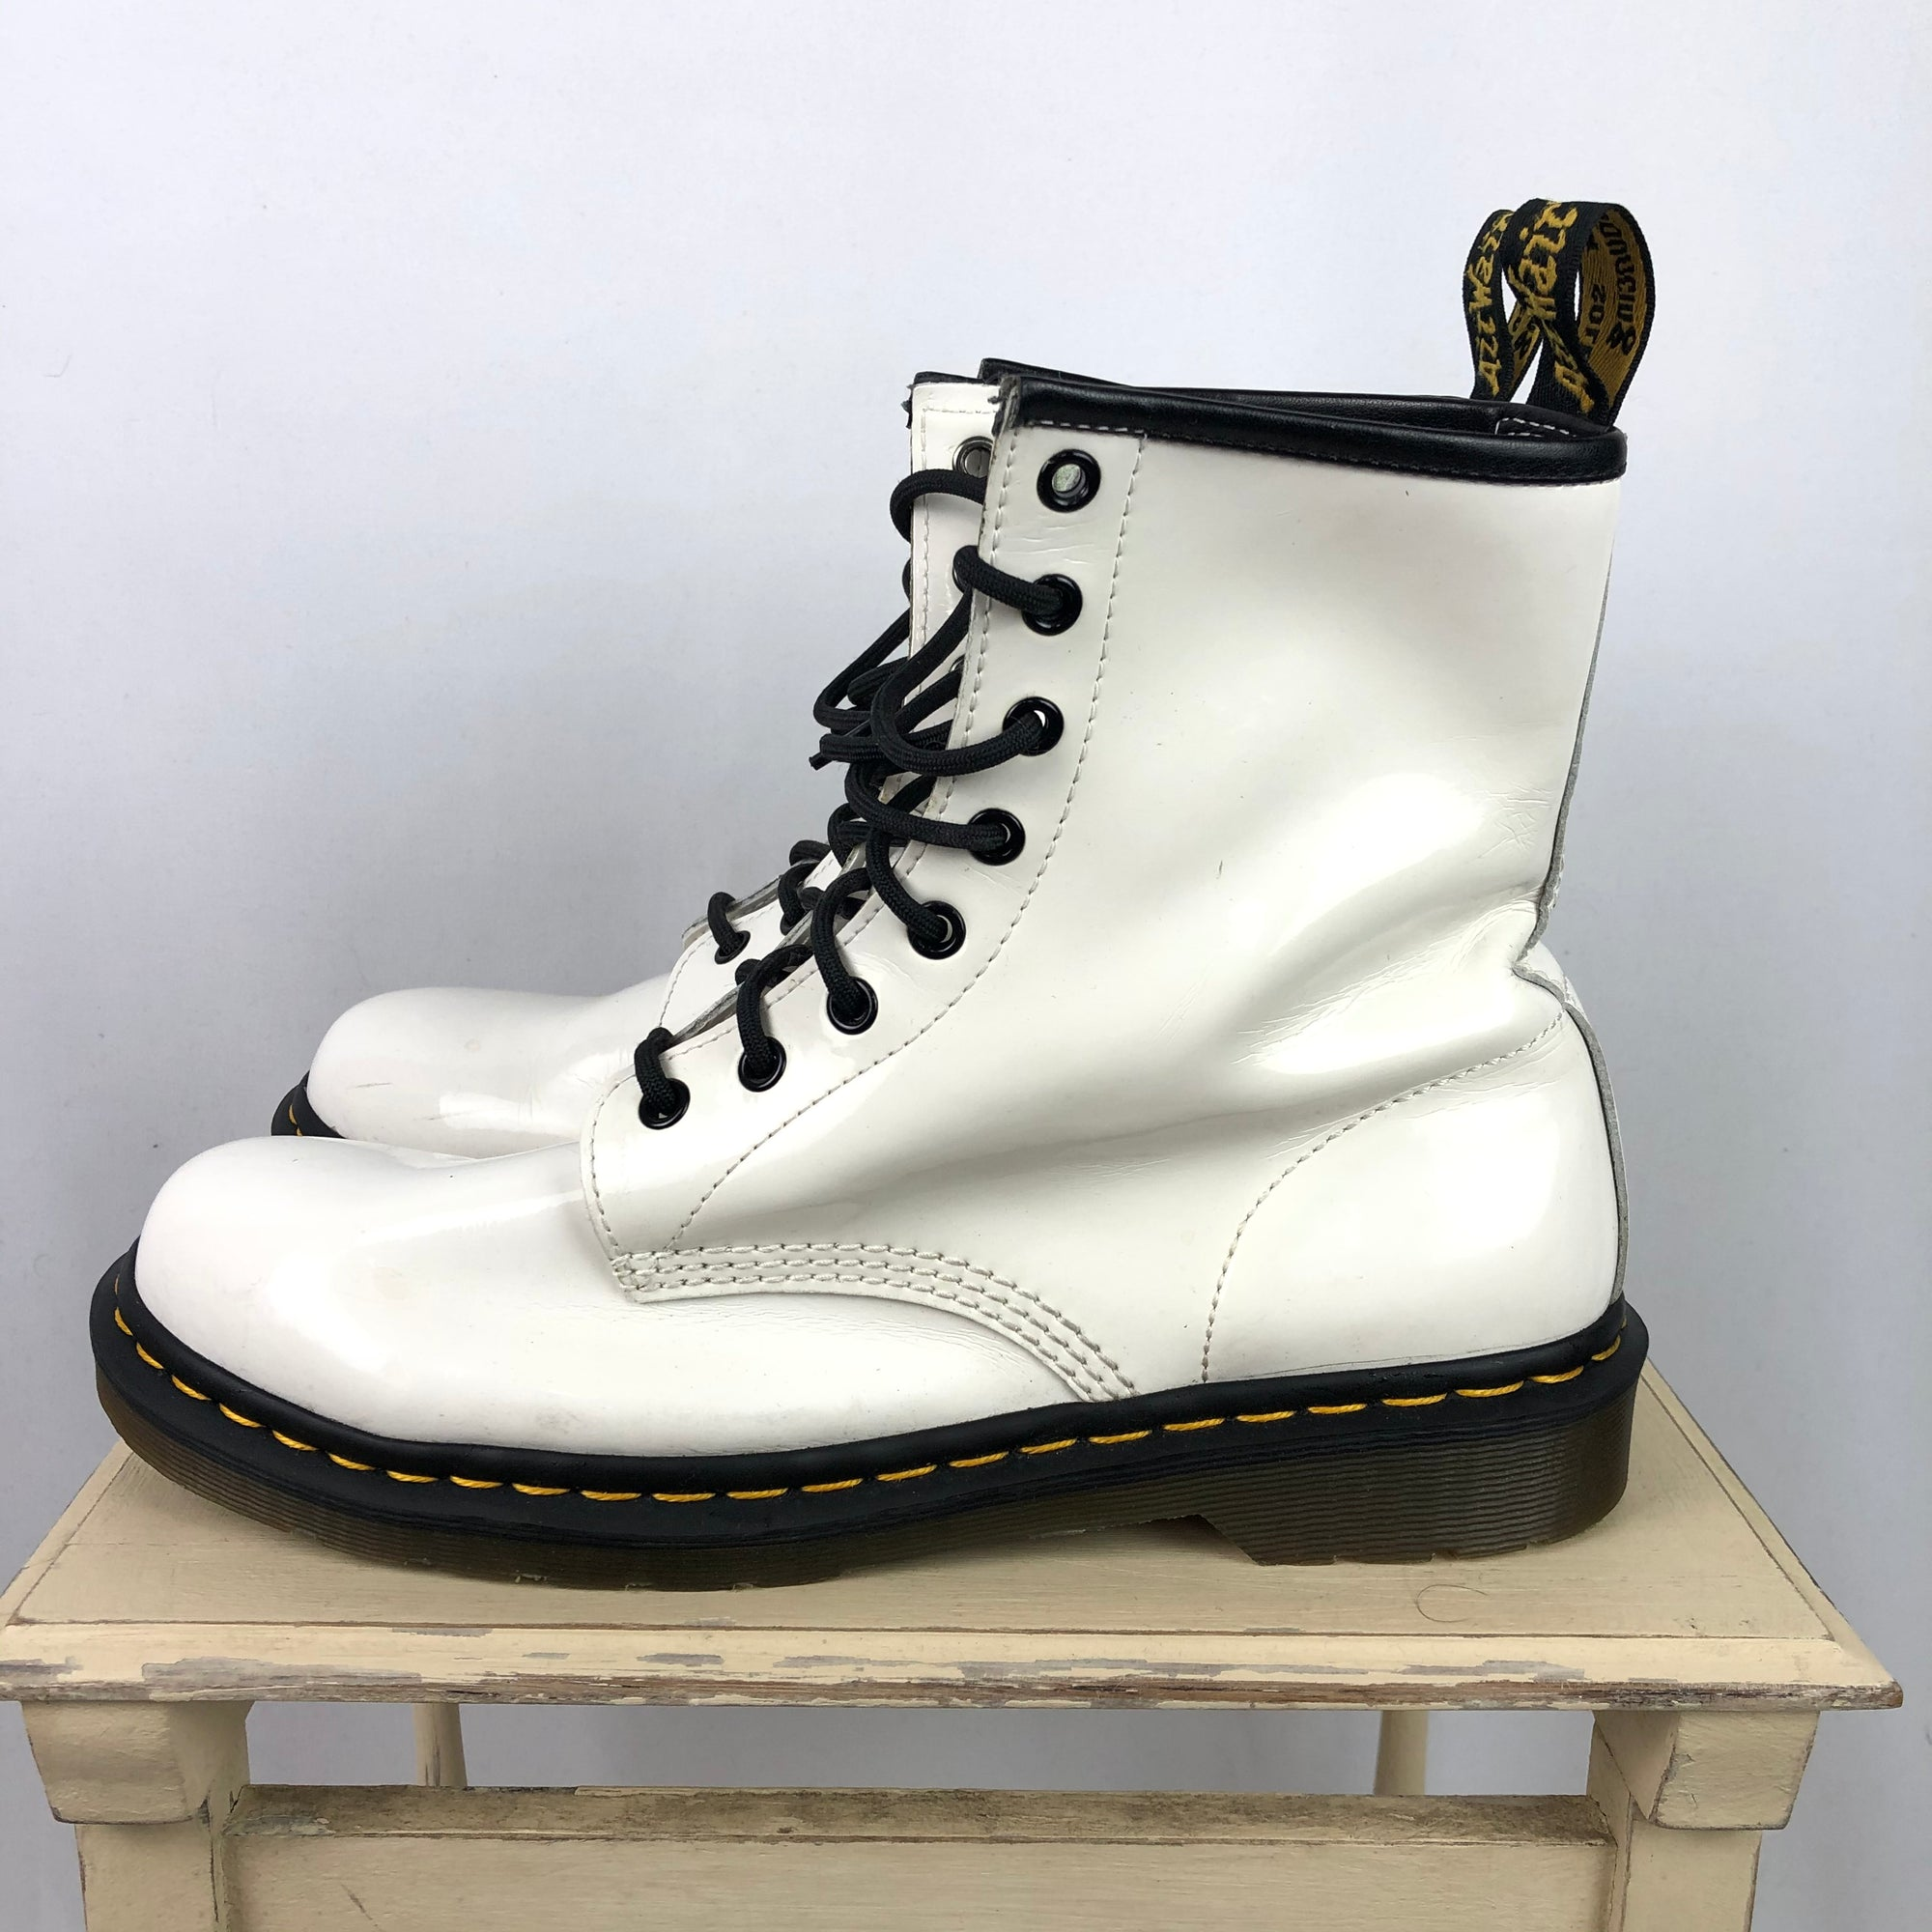 Dr Martens Patent 1460 Boots in White - UK9/EU43